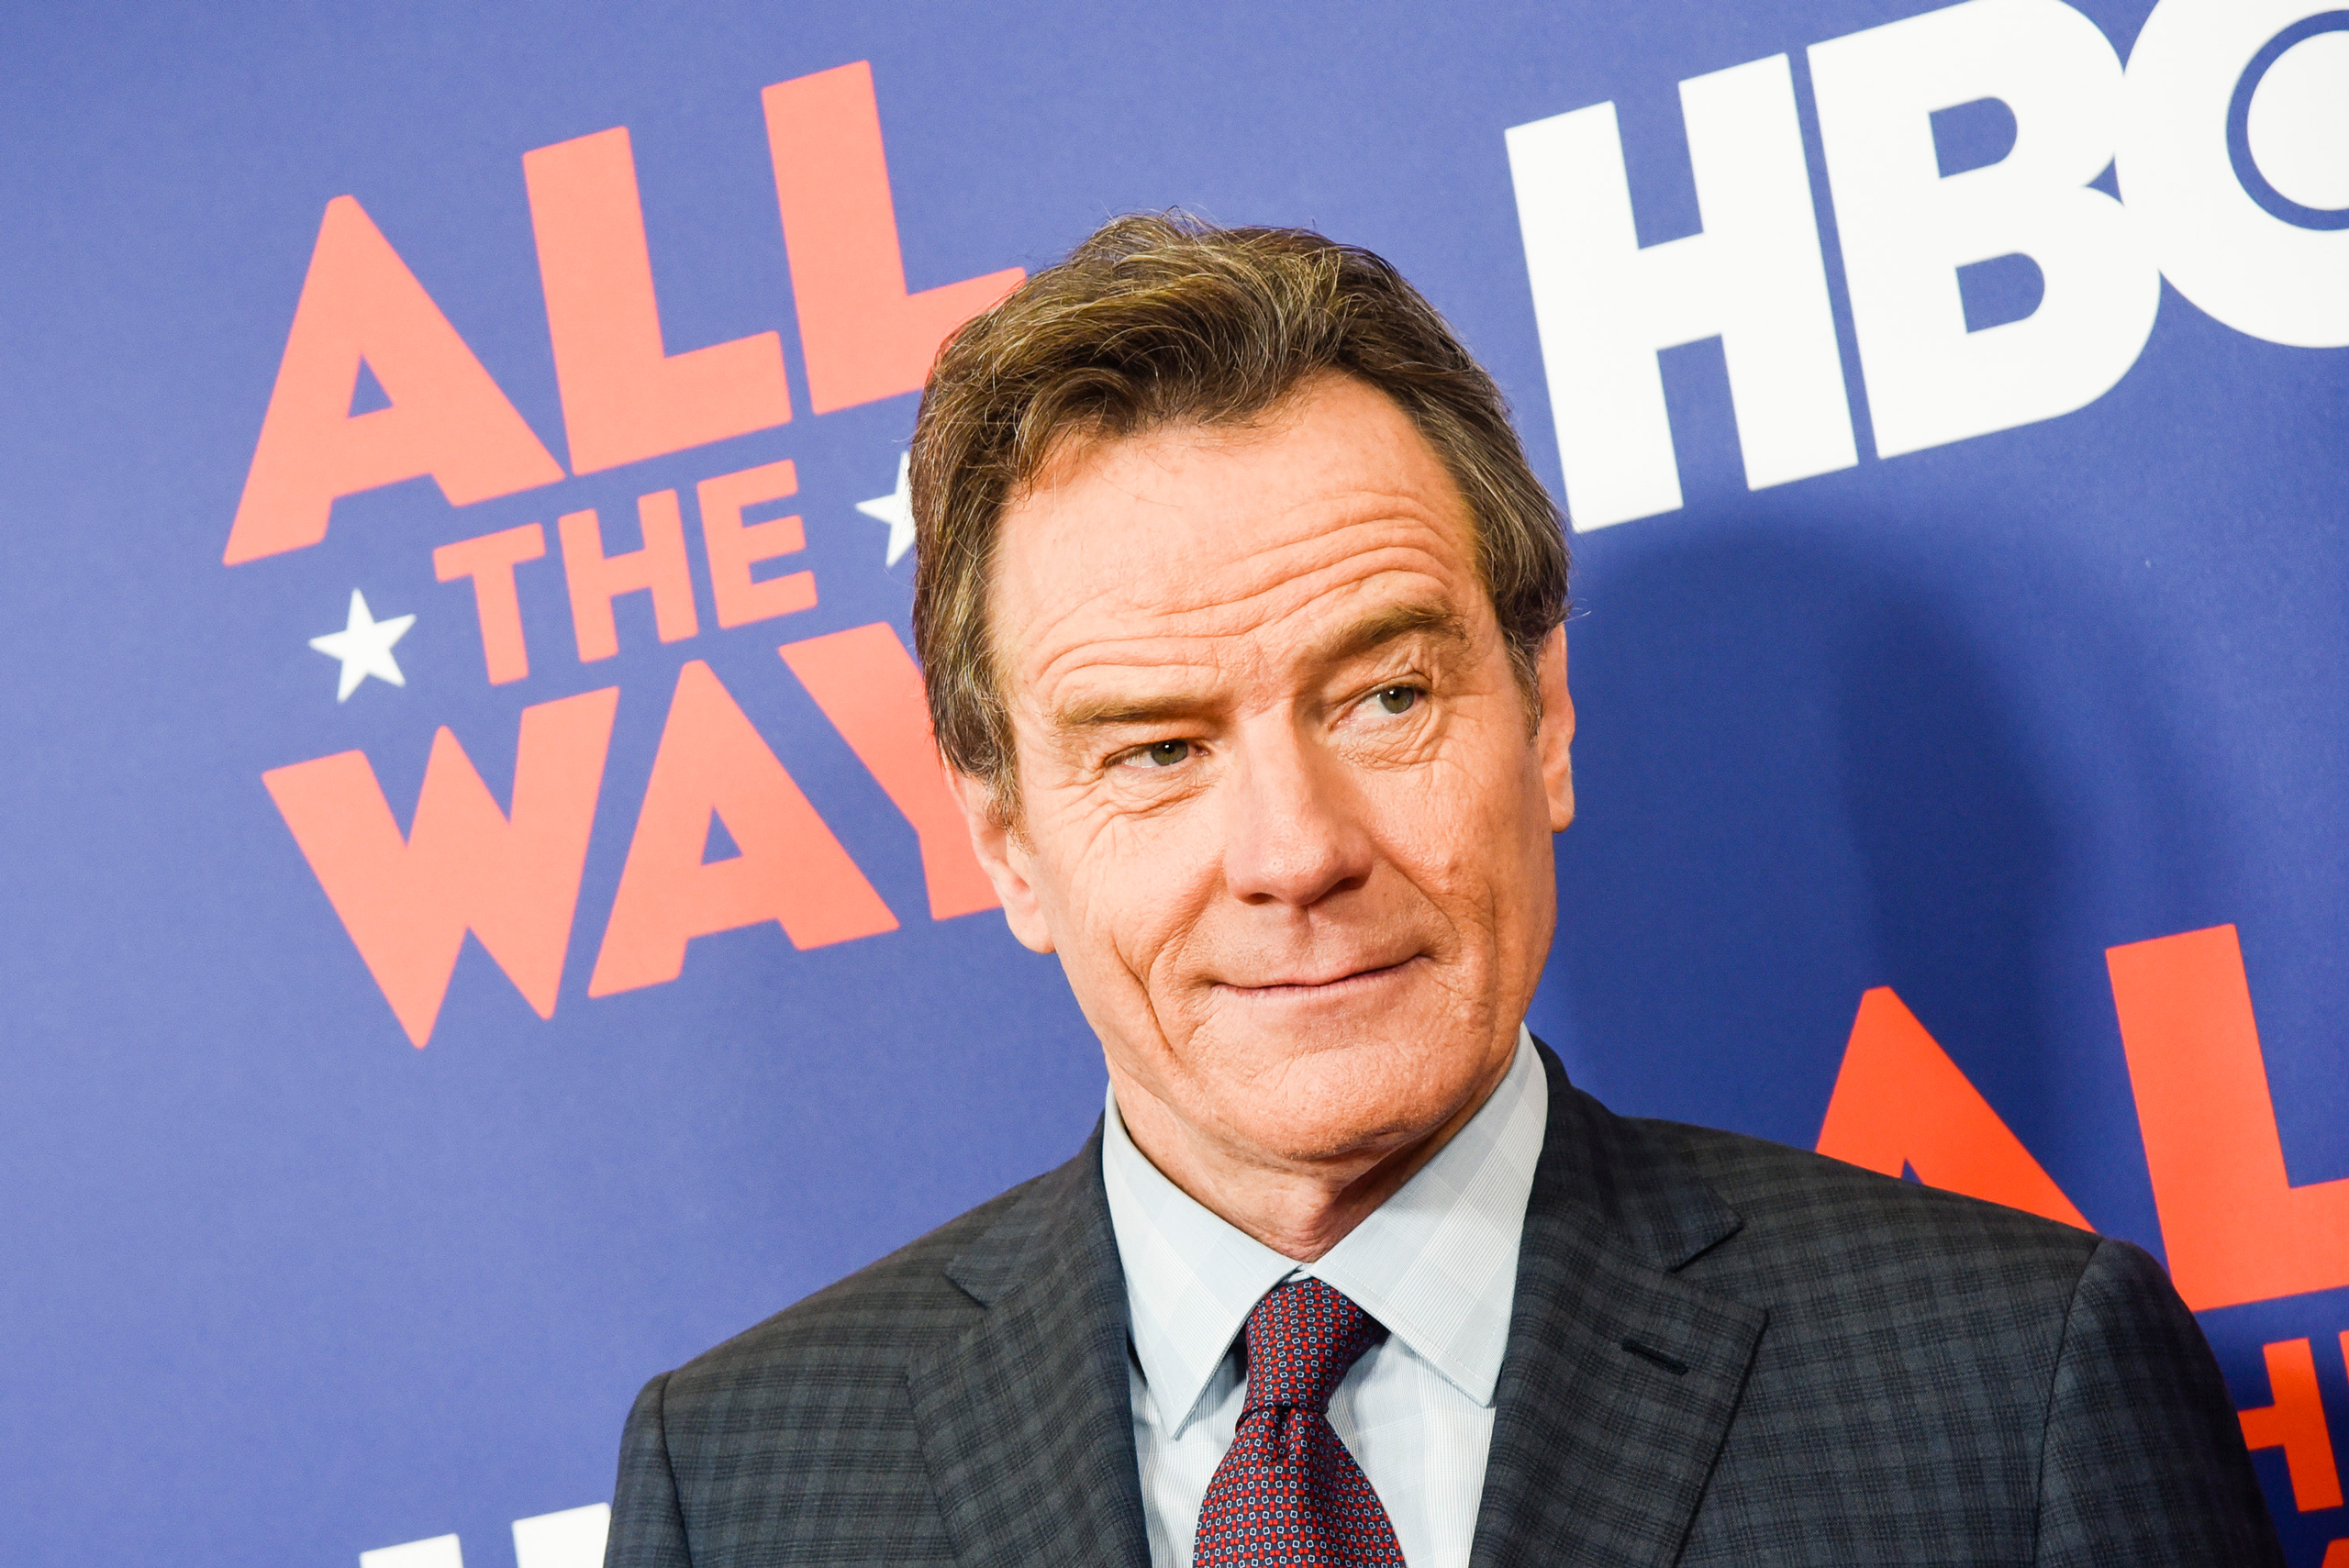 Bryan Cranston poses for photographers during HBO's  All The Way